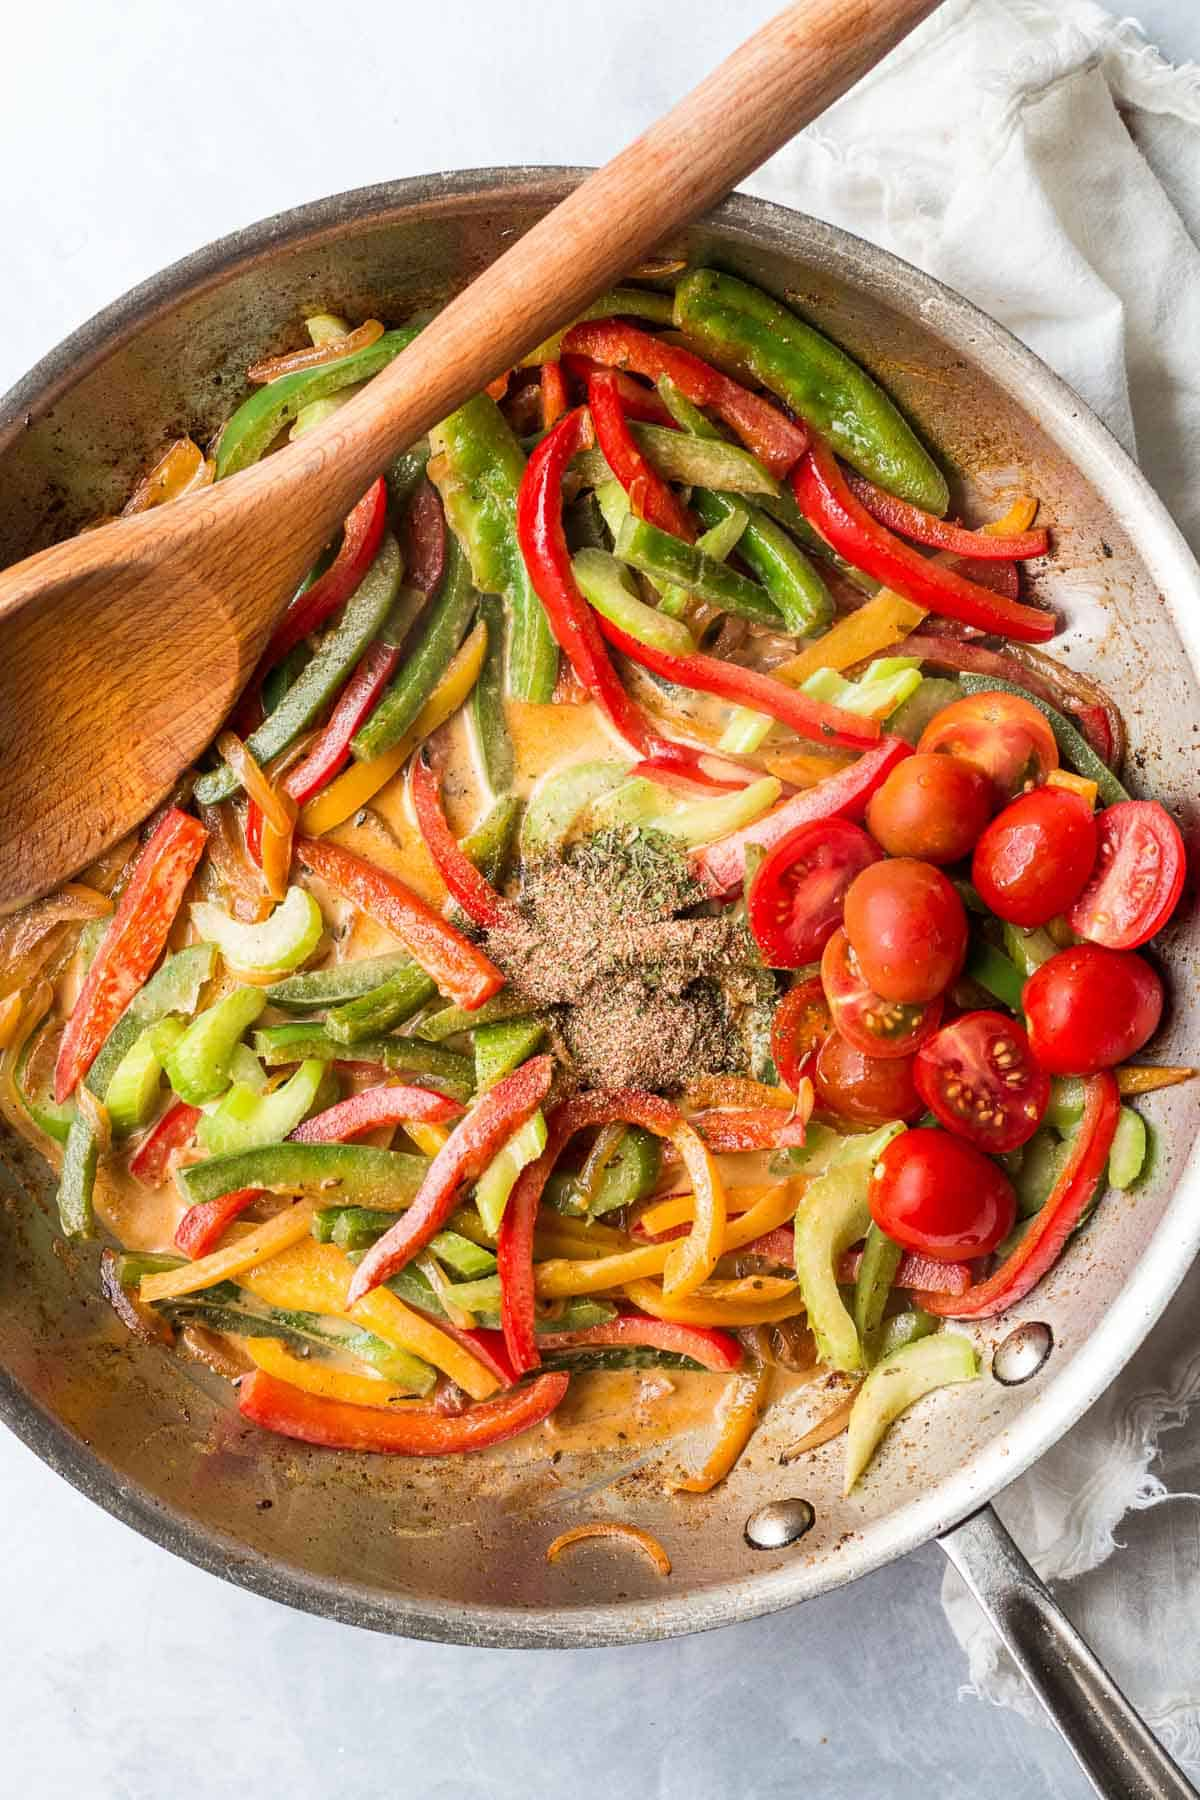 tomatoes and jerk seasoning added to frying pan with bell peppers and celery.